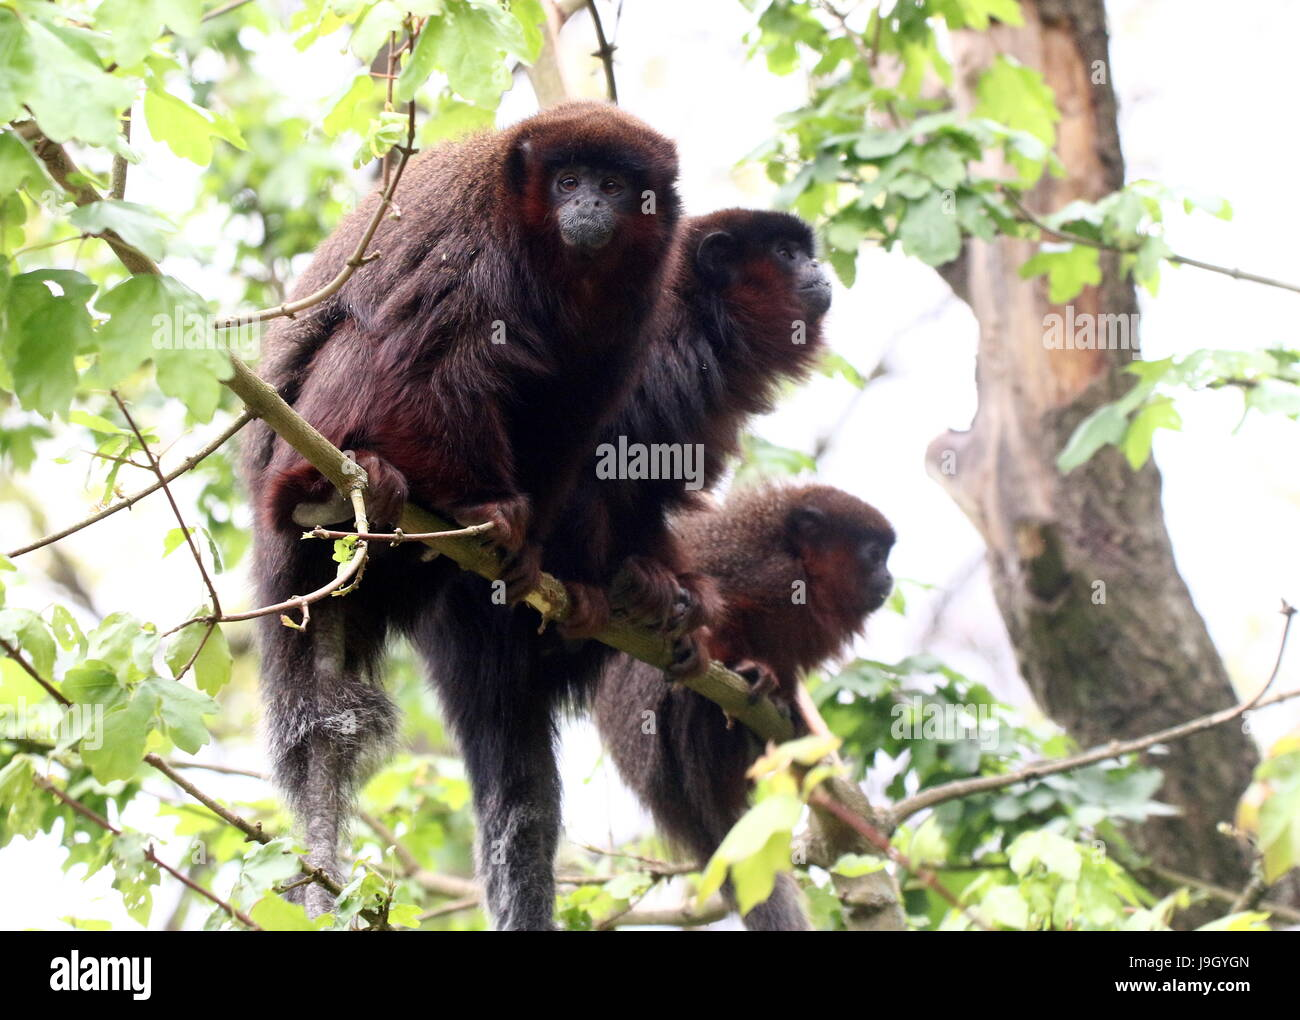 Family of South American Coppery or copper coloured Titi Monkeys (Callicebus cupreus) in a tree. Stock Photo